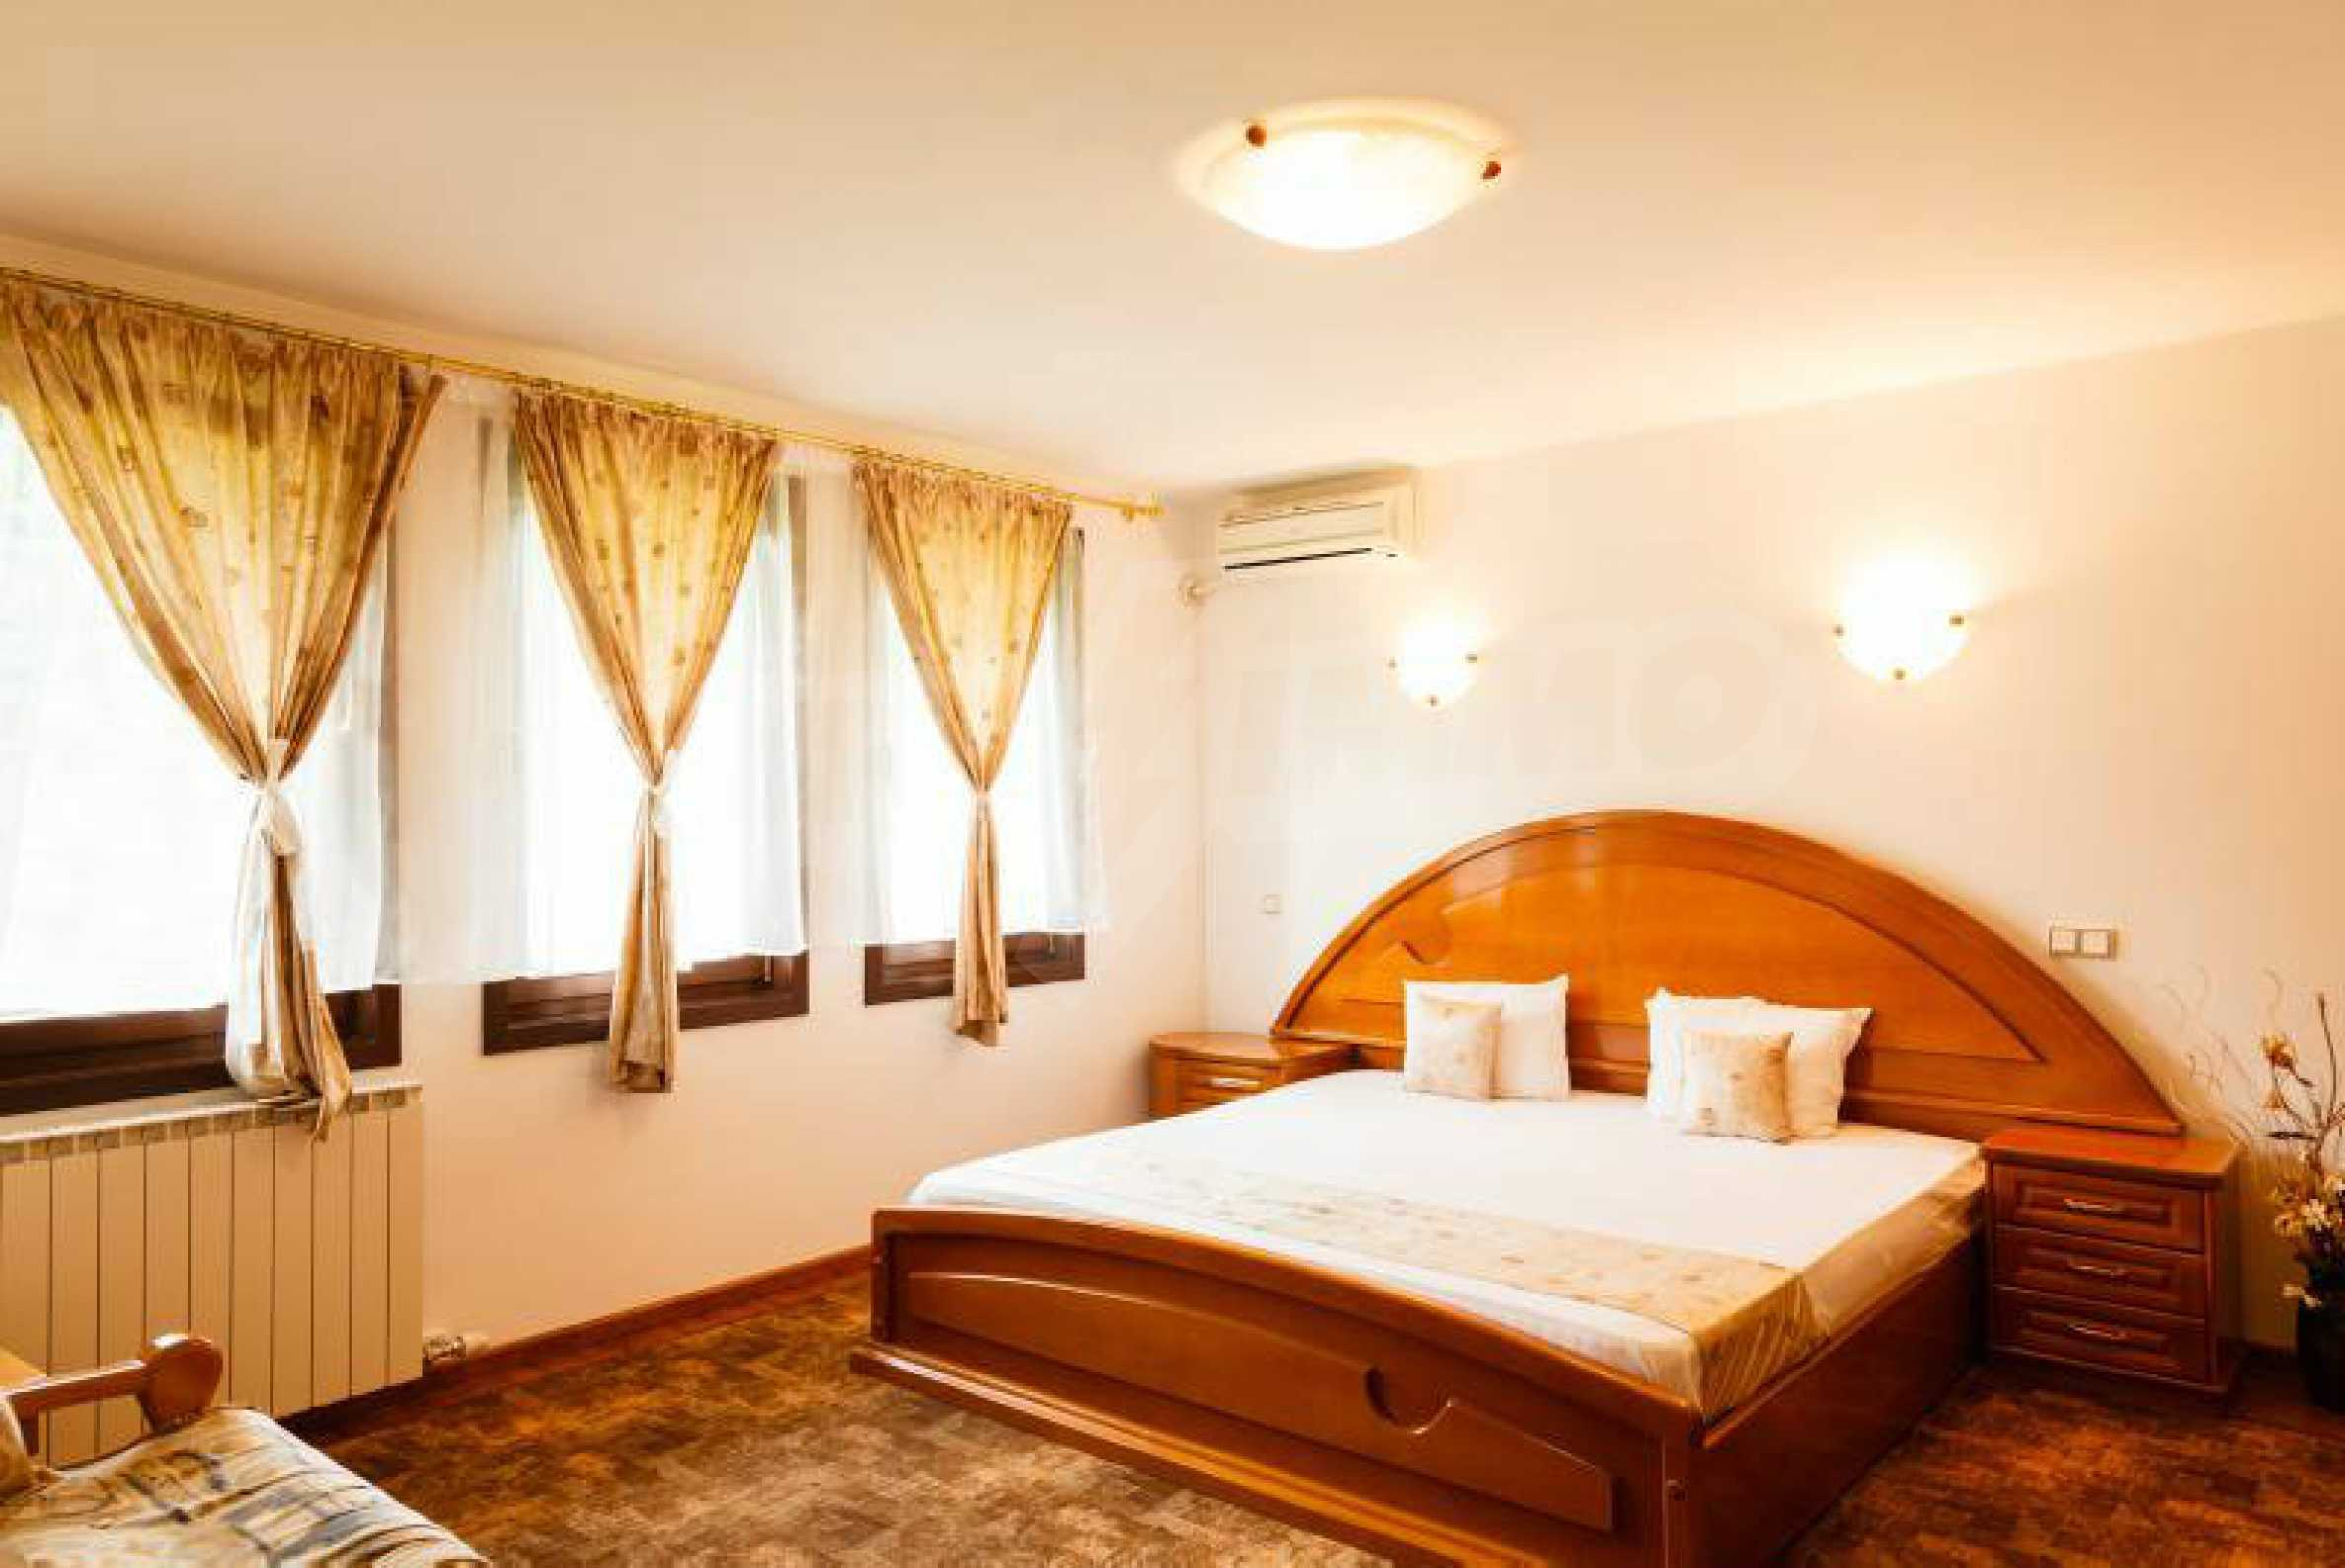 Fully equipped hotel, a restaurant, a house and a yard in the center of popular Arbanassi village 36